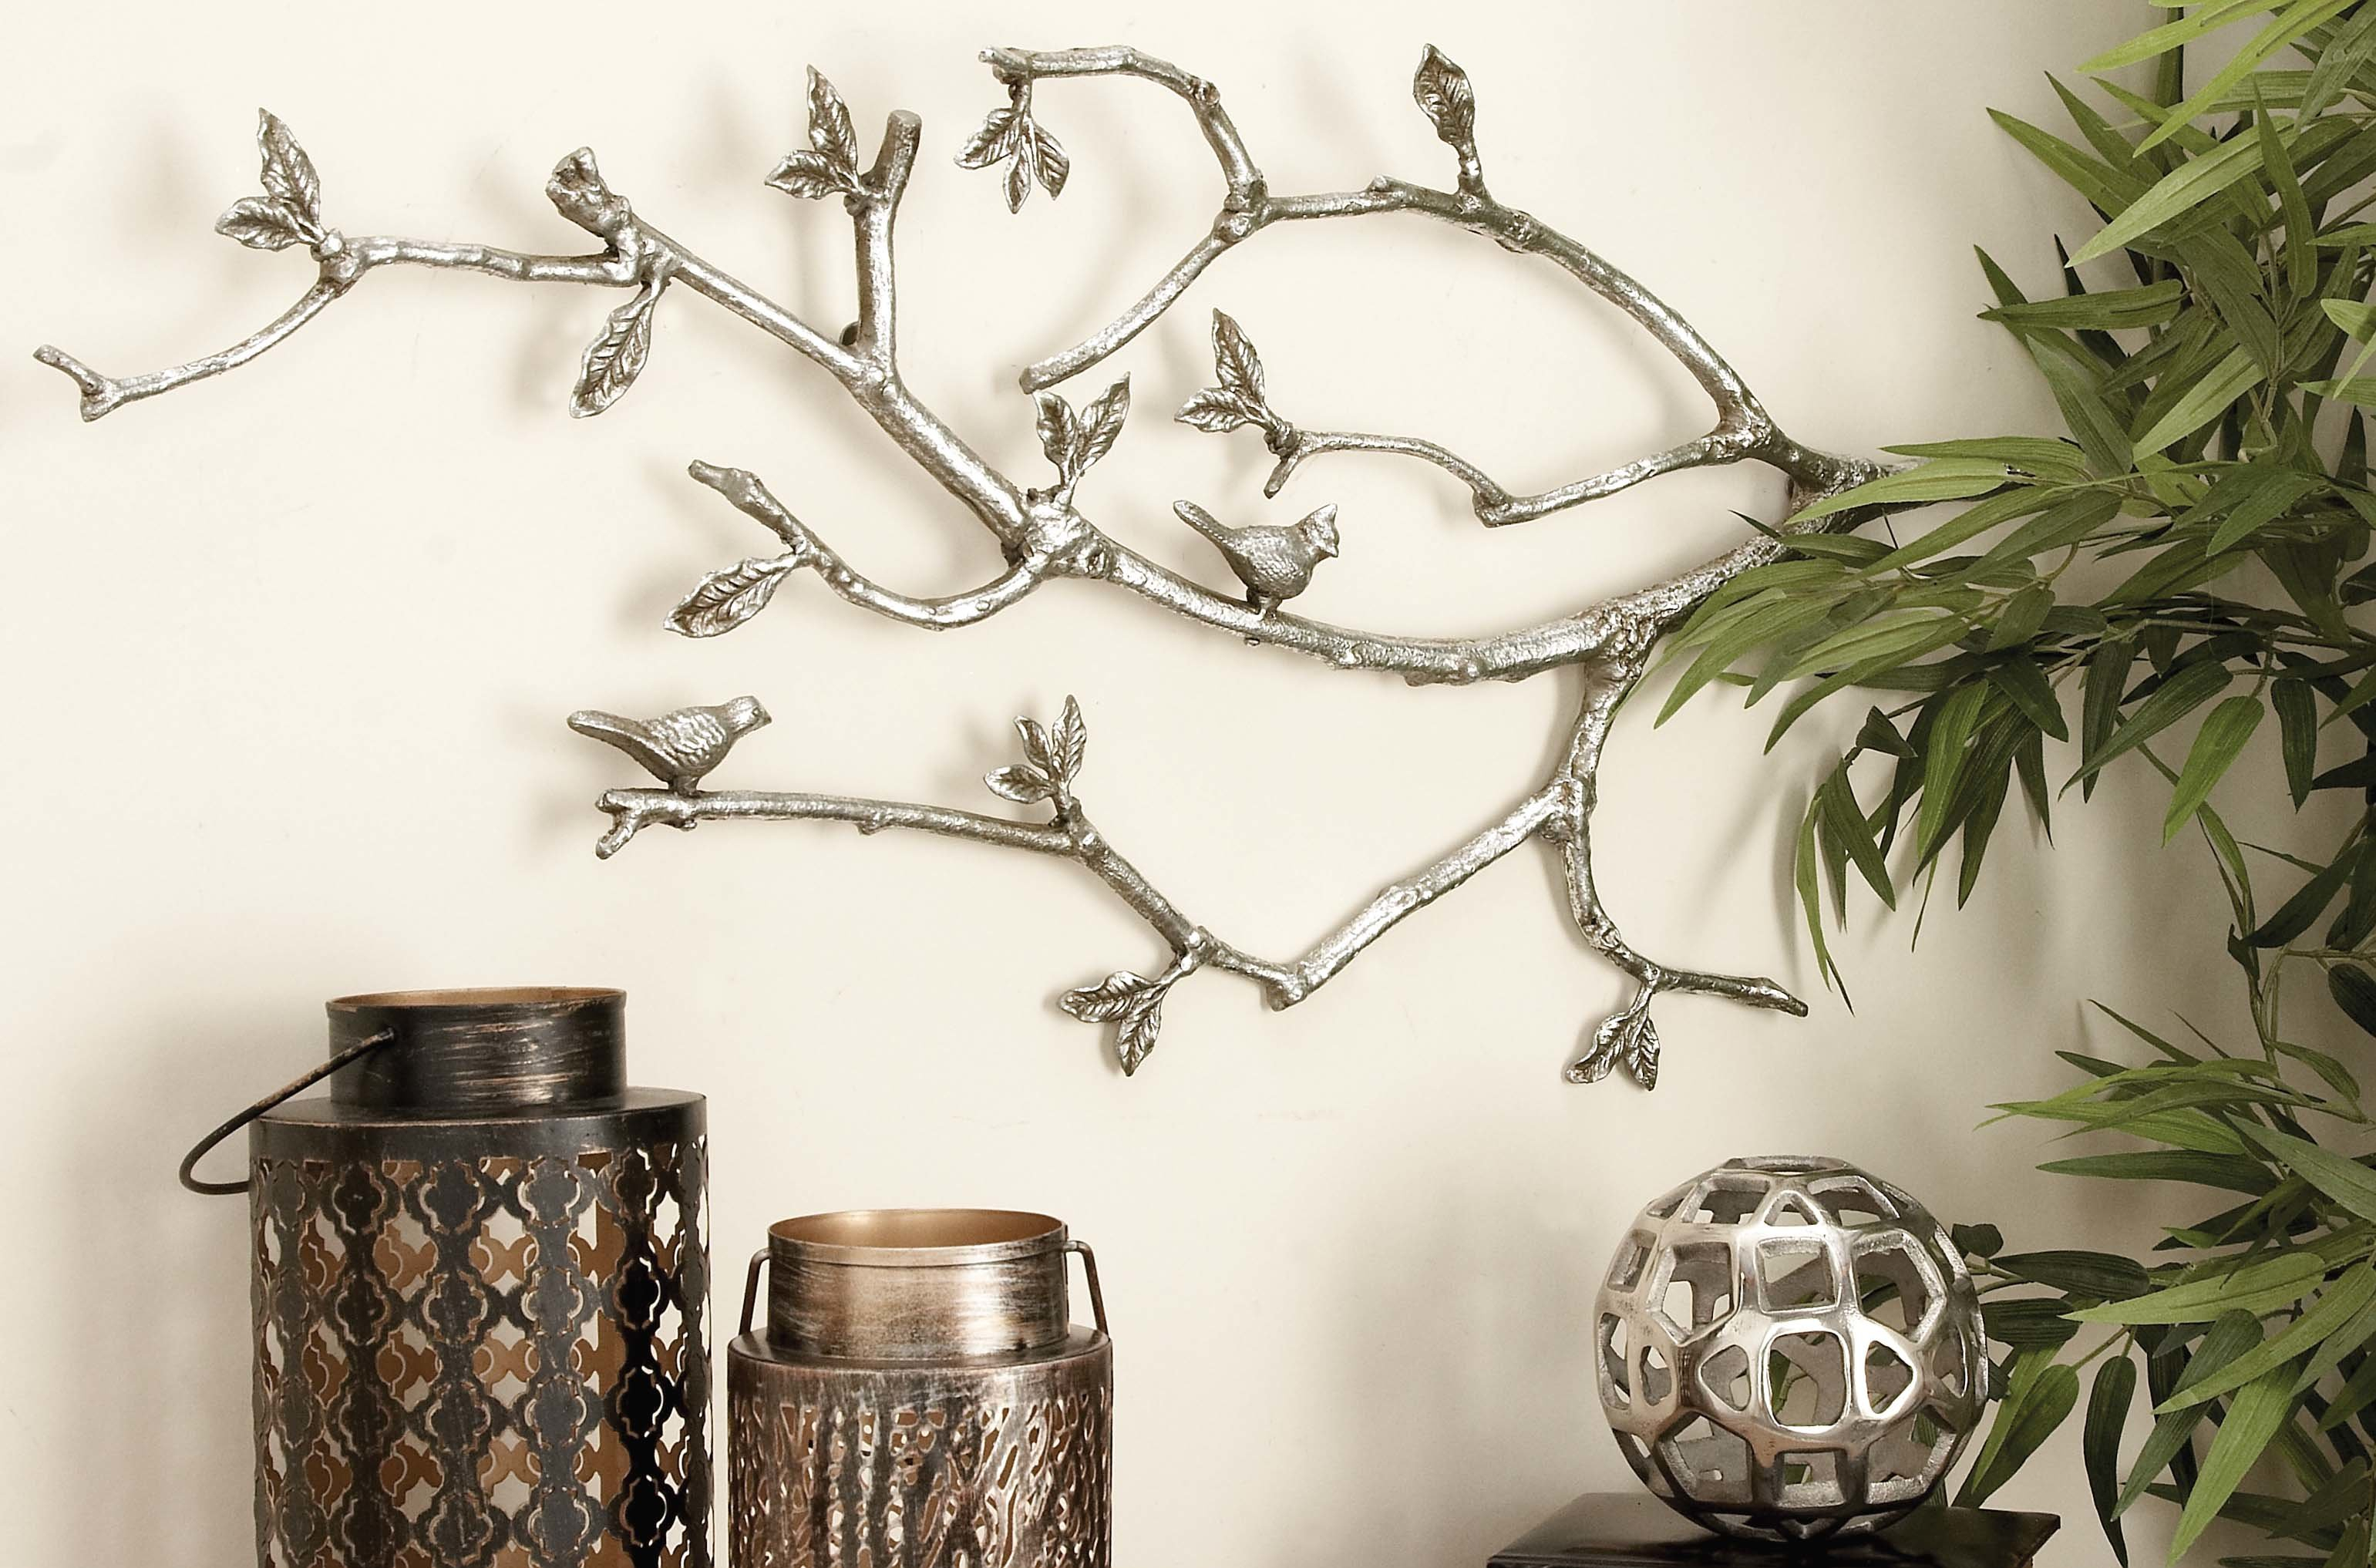 Farmhouse & Rustic Winston Porter Wall Decor | Birch Lane In Leaves Metal Sculpture Wall Decor By Winston Porter (View 17 of 30)